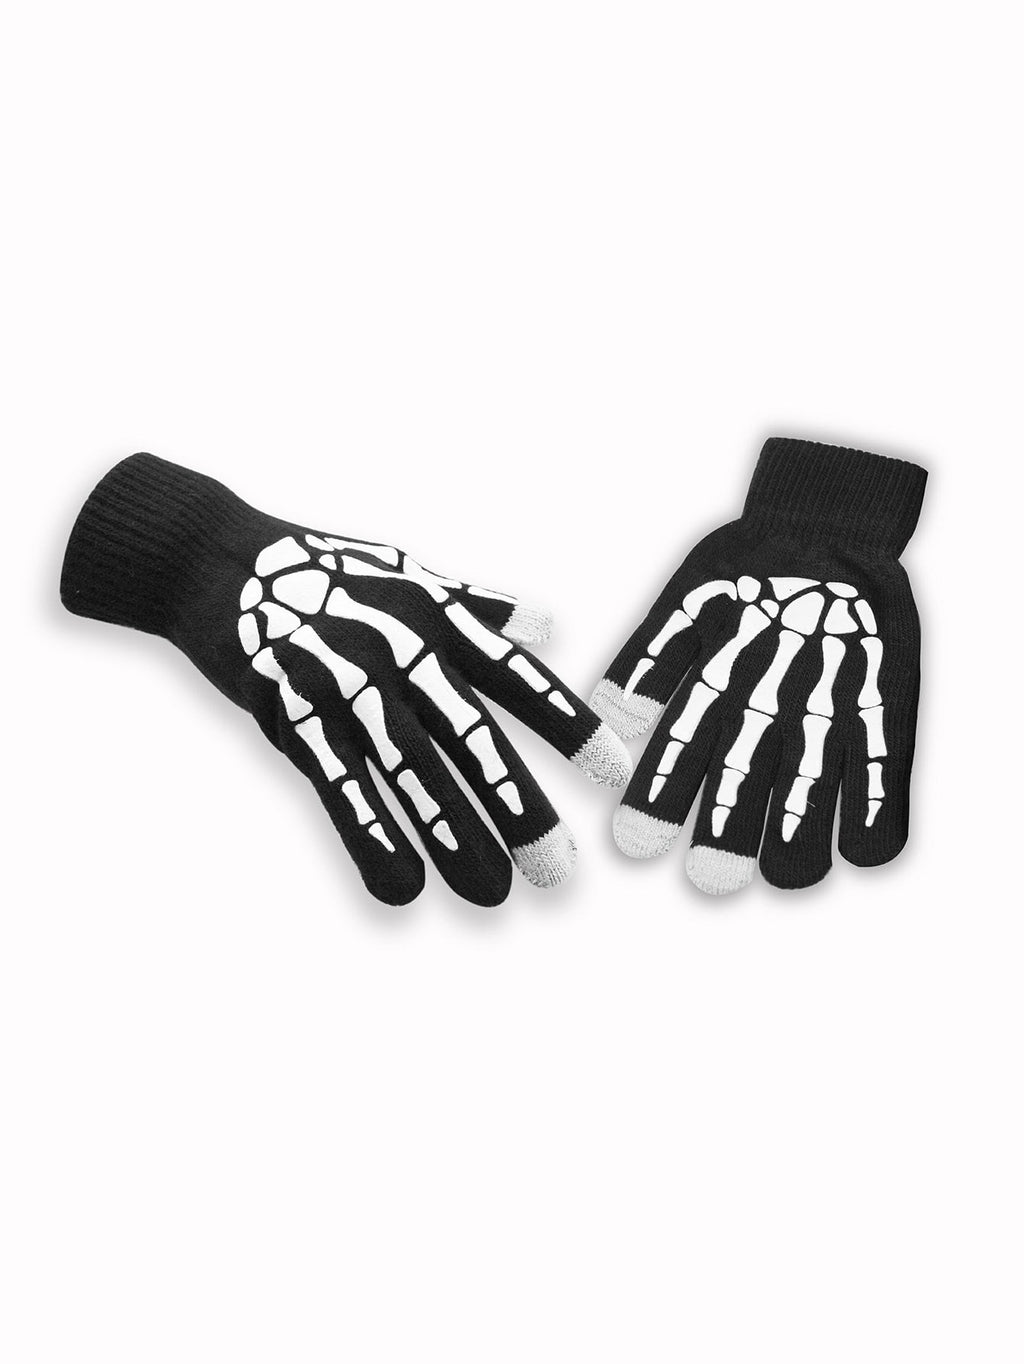 Men's Gloves - Touch-screen Gloves 1pair